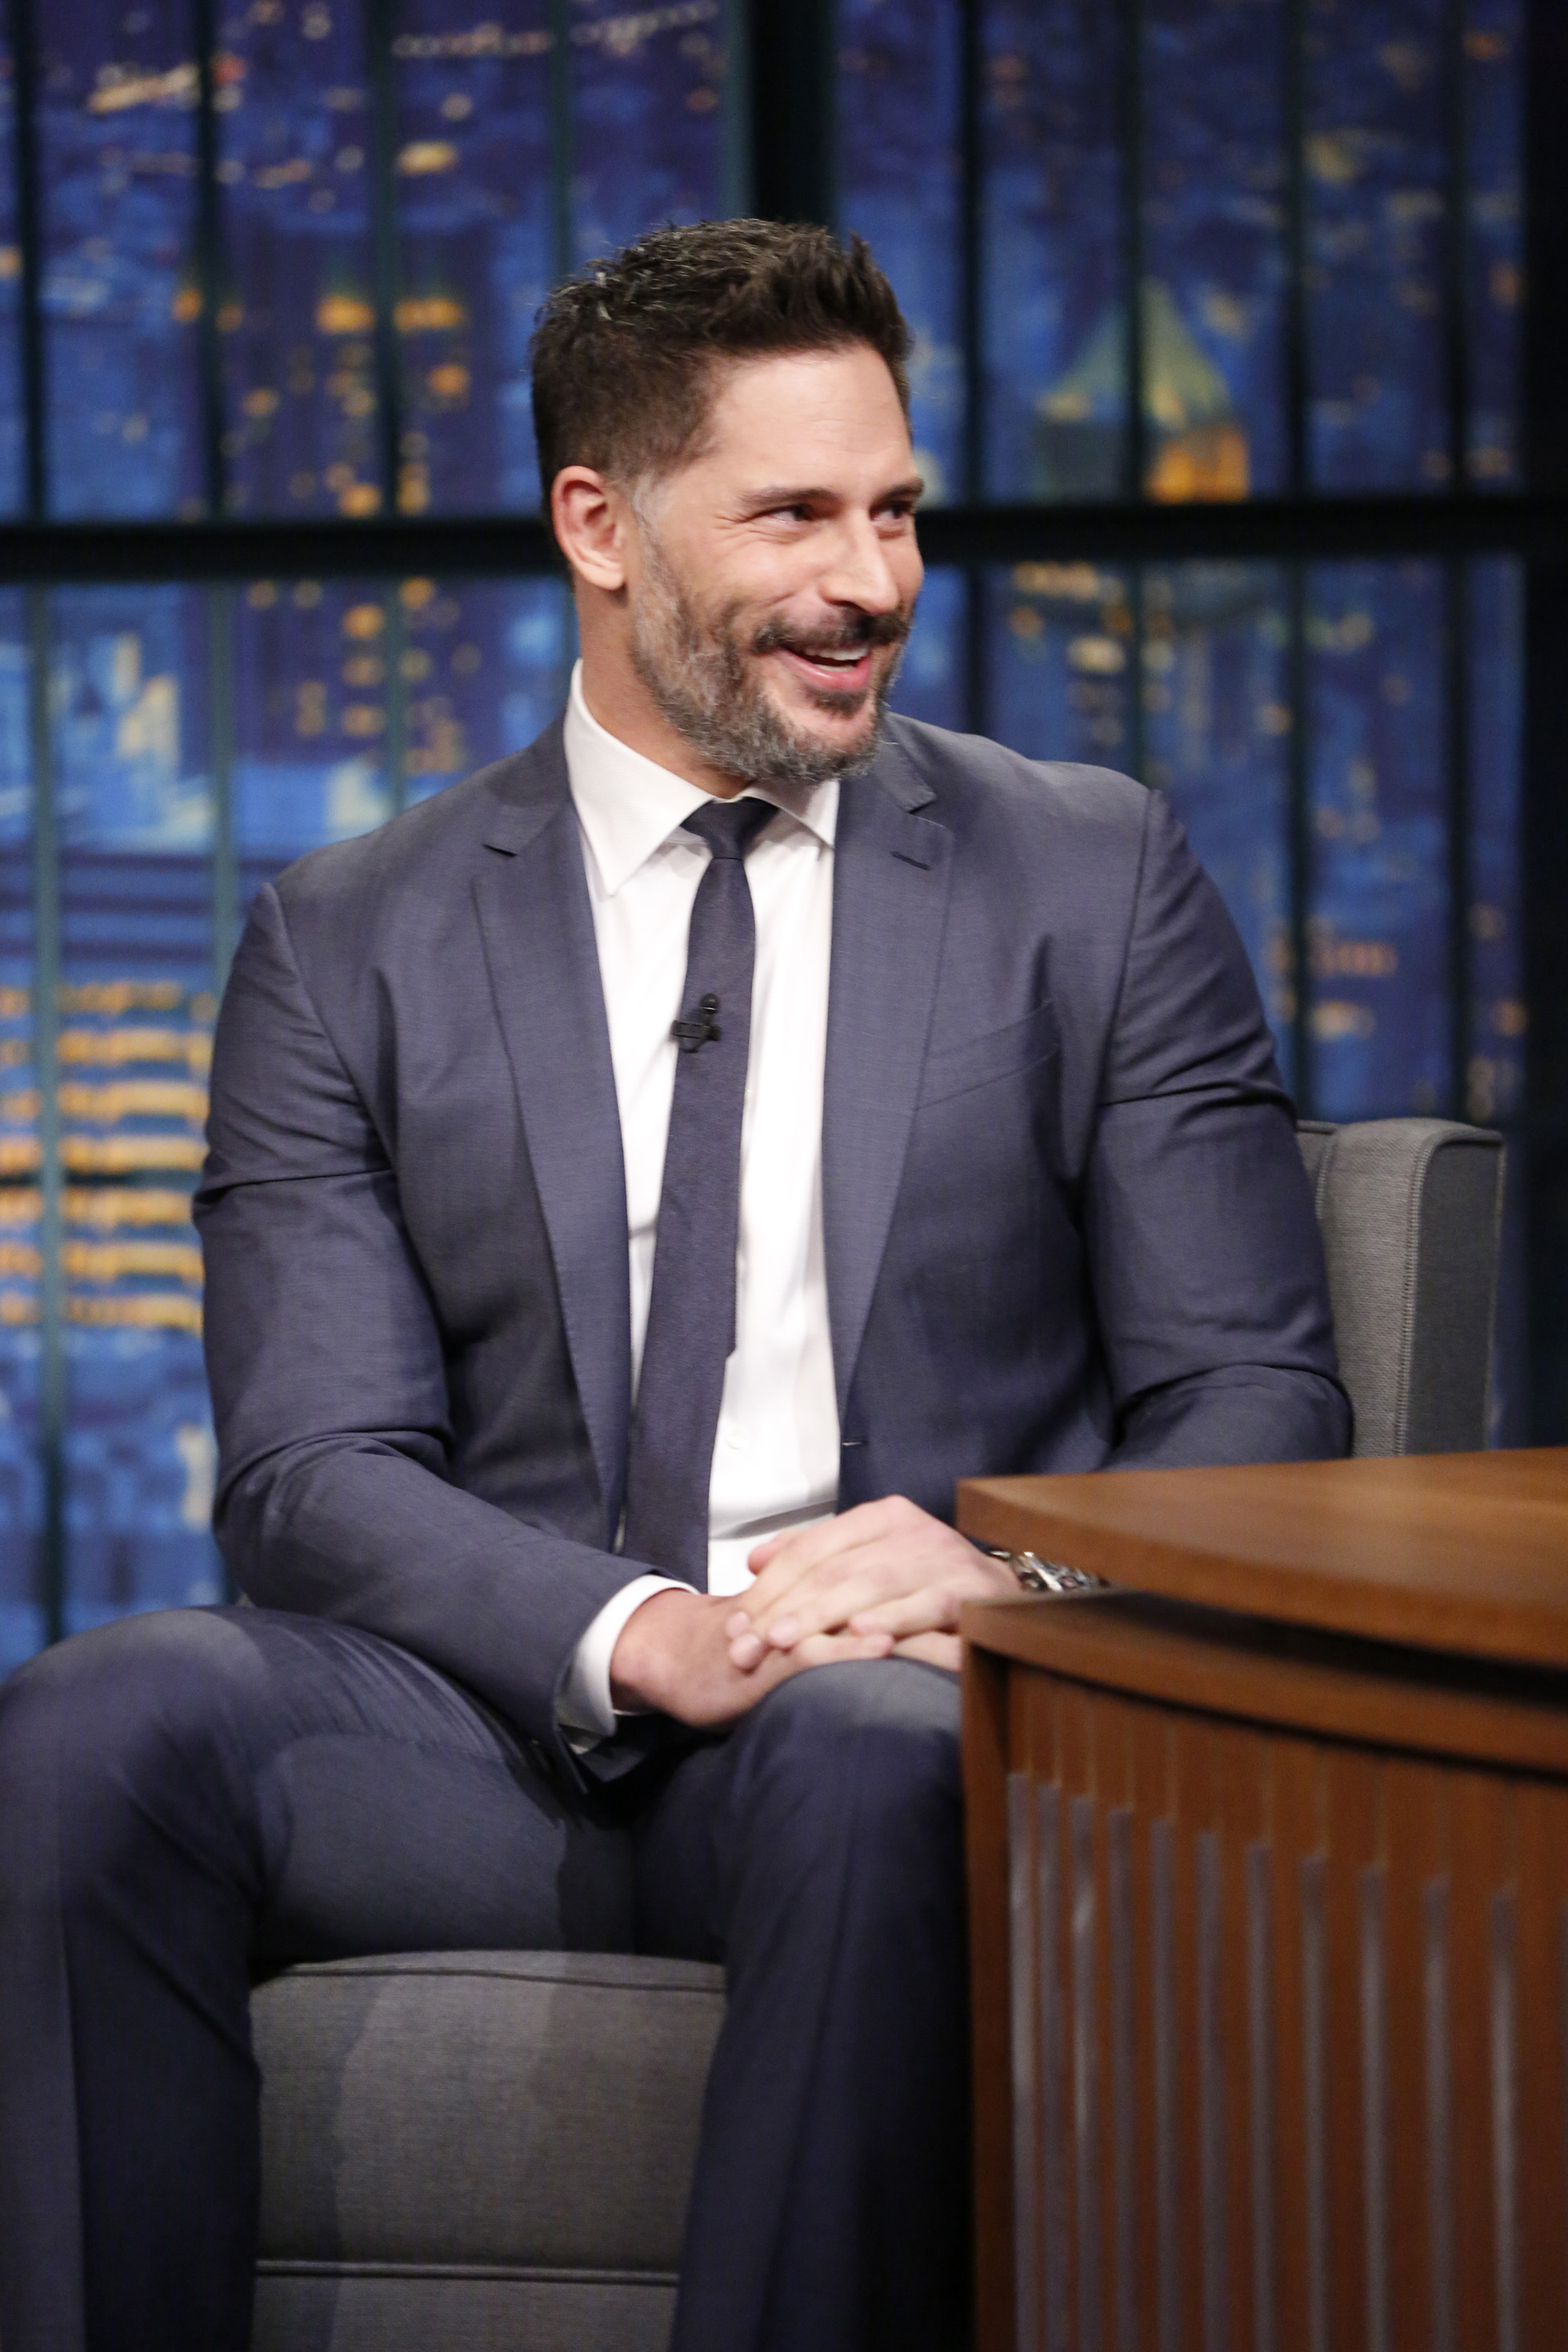 Actor Joe Manganiello during an interview with Seth Meyers on Late Night on June 22, 2015.